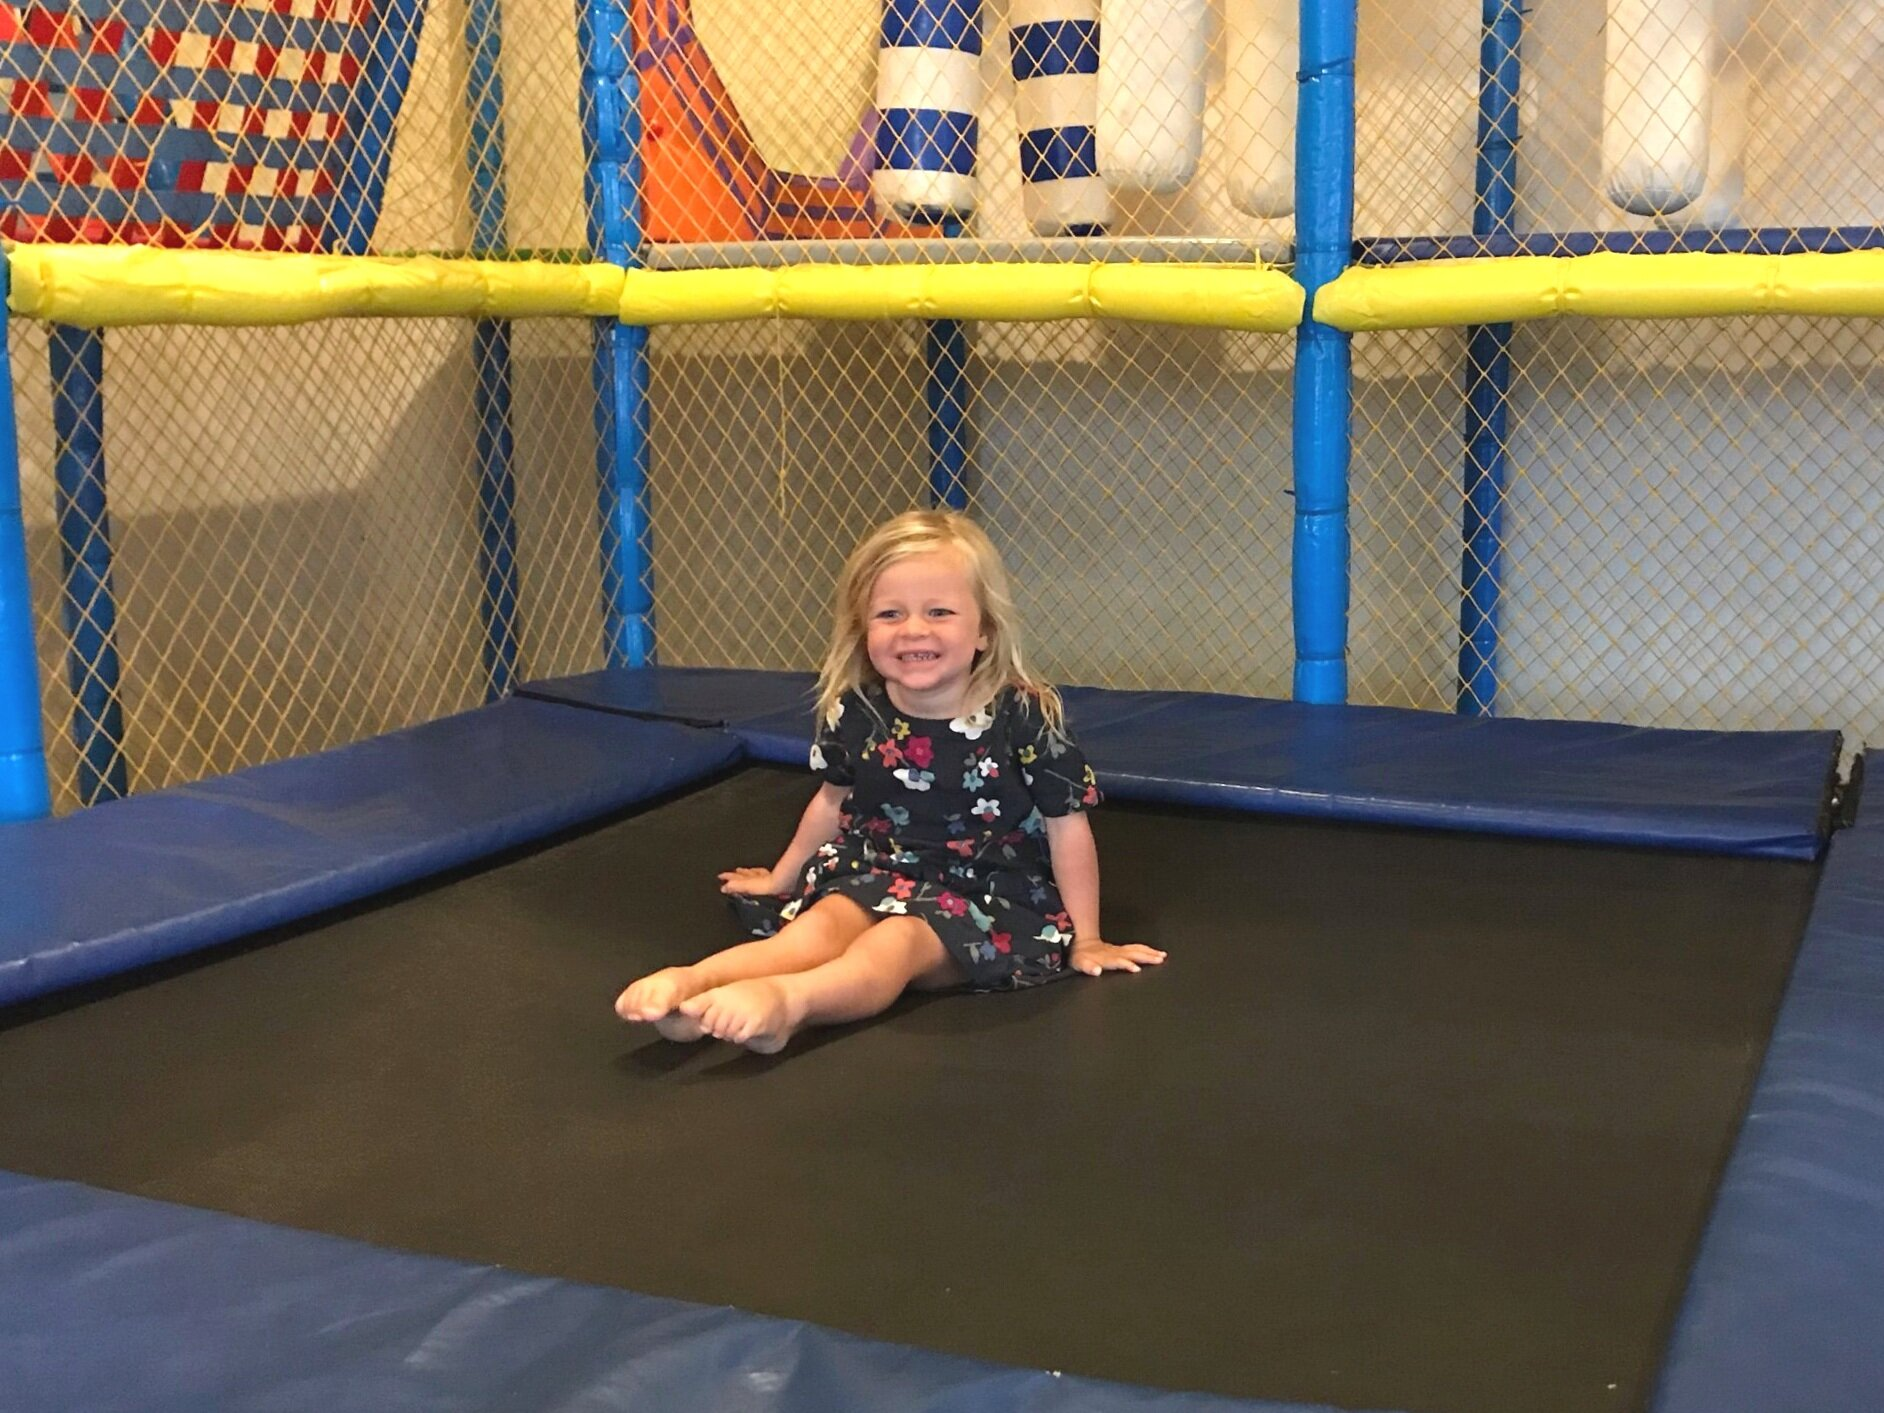 Liesel on the trampoline at Grand Mirage's Kids Club